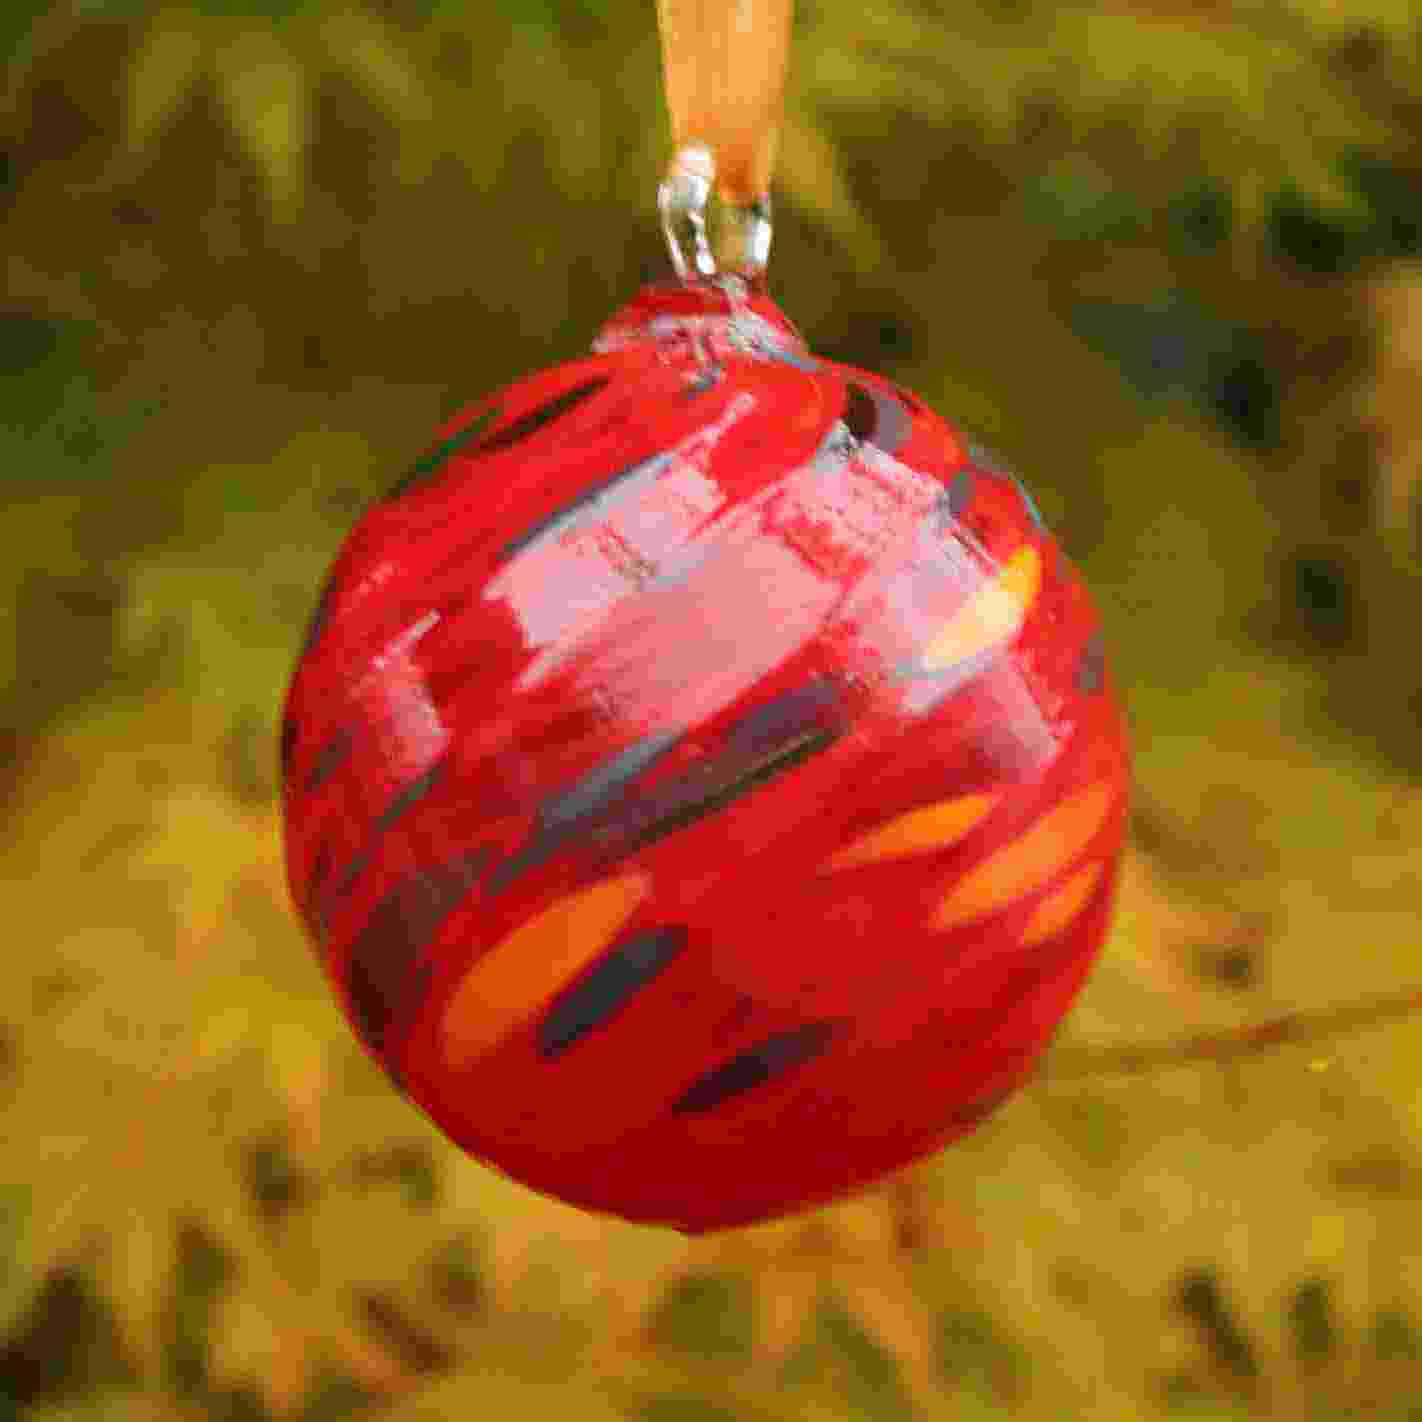 Cousin ornaments - To Place An Order Or For More Information Please Call 206 753 4931 Or Email Bookstore Chihulygardenandglass Com